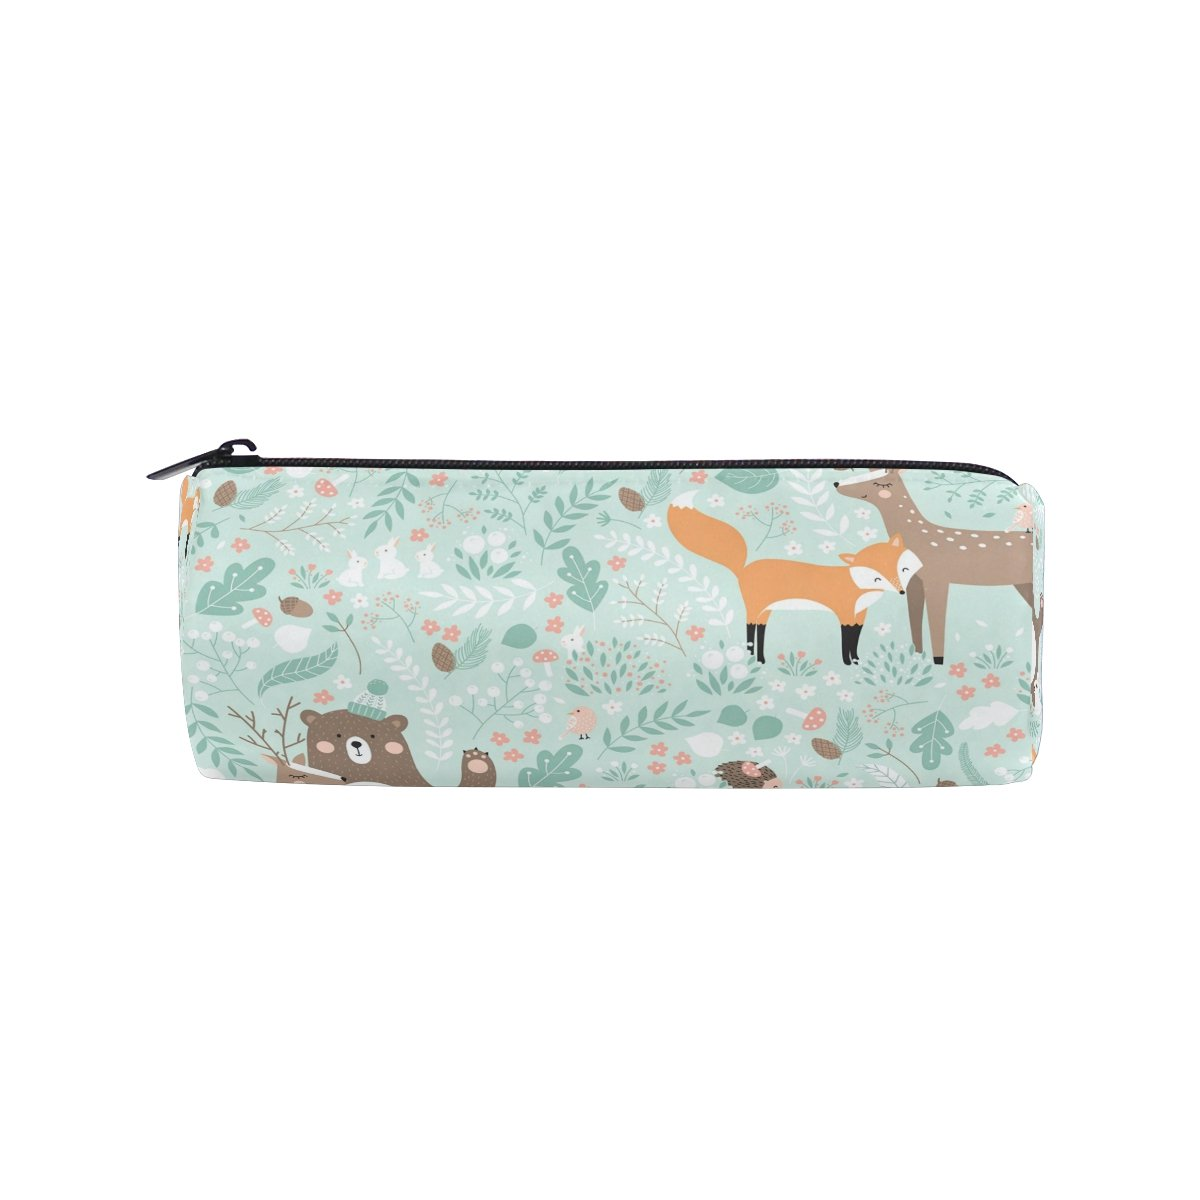 ALAZA Forest Animals Bear Deer Fox Rabbit Pencil Pen Case Pouch Bag with Zipper for Girls Kids School Student Stationery Office Supplies